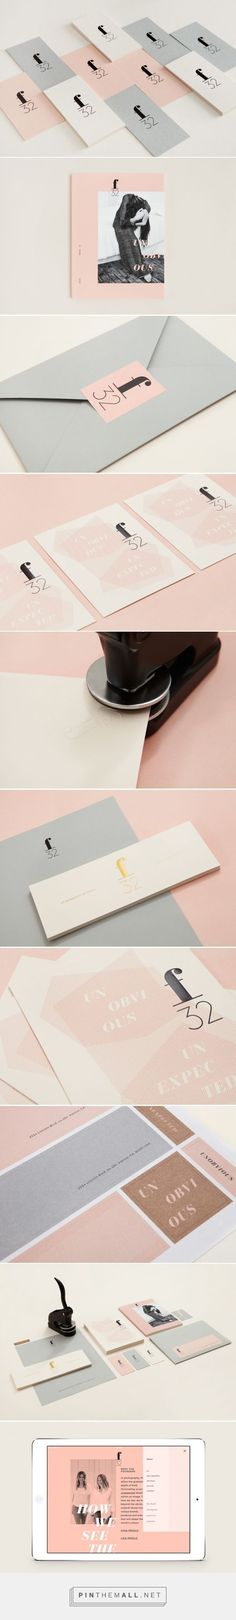 branding corporate identity stationary minimalistic graphic design sticker business card letterhead magazine cover website..